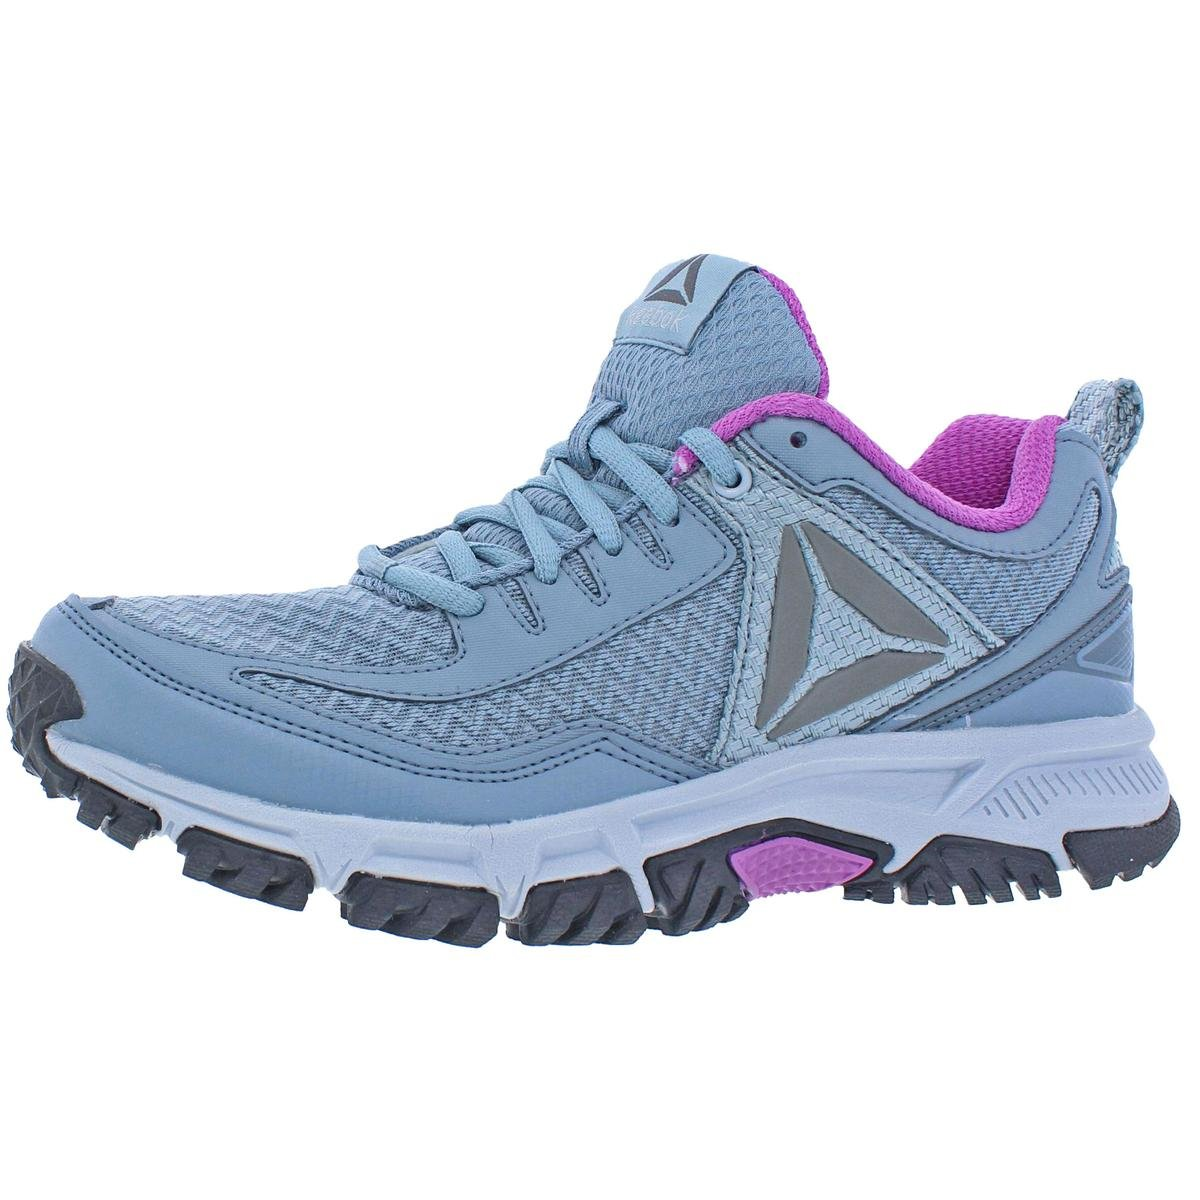 Reebok Women's Ridgerider Trail 2.0 Track Shoe, Meteor Grey/Asteroid Dust/Cloud Grey/Violet/Pewter/Silver, 8.5 M US